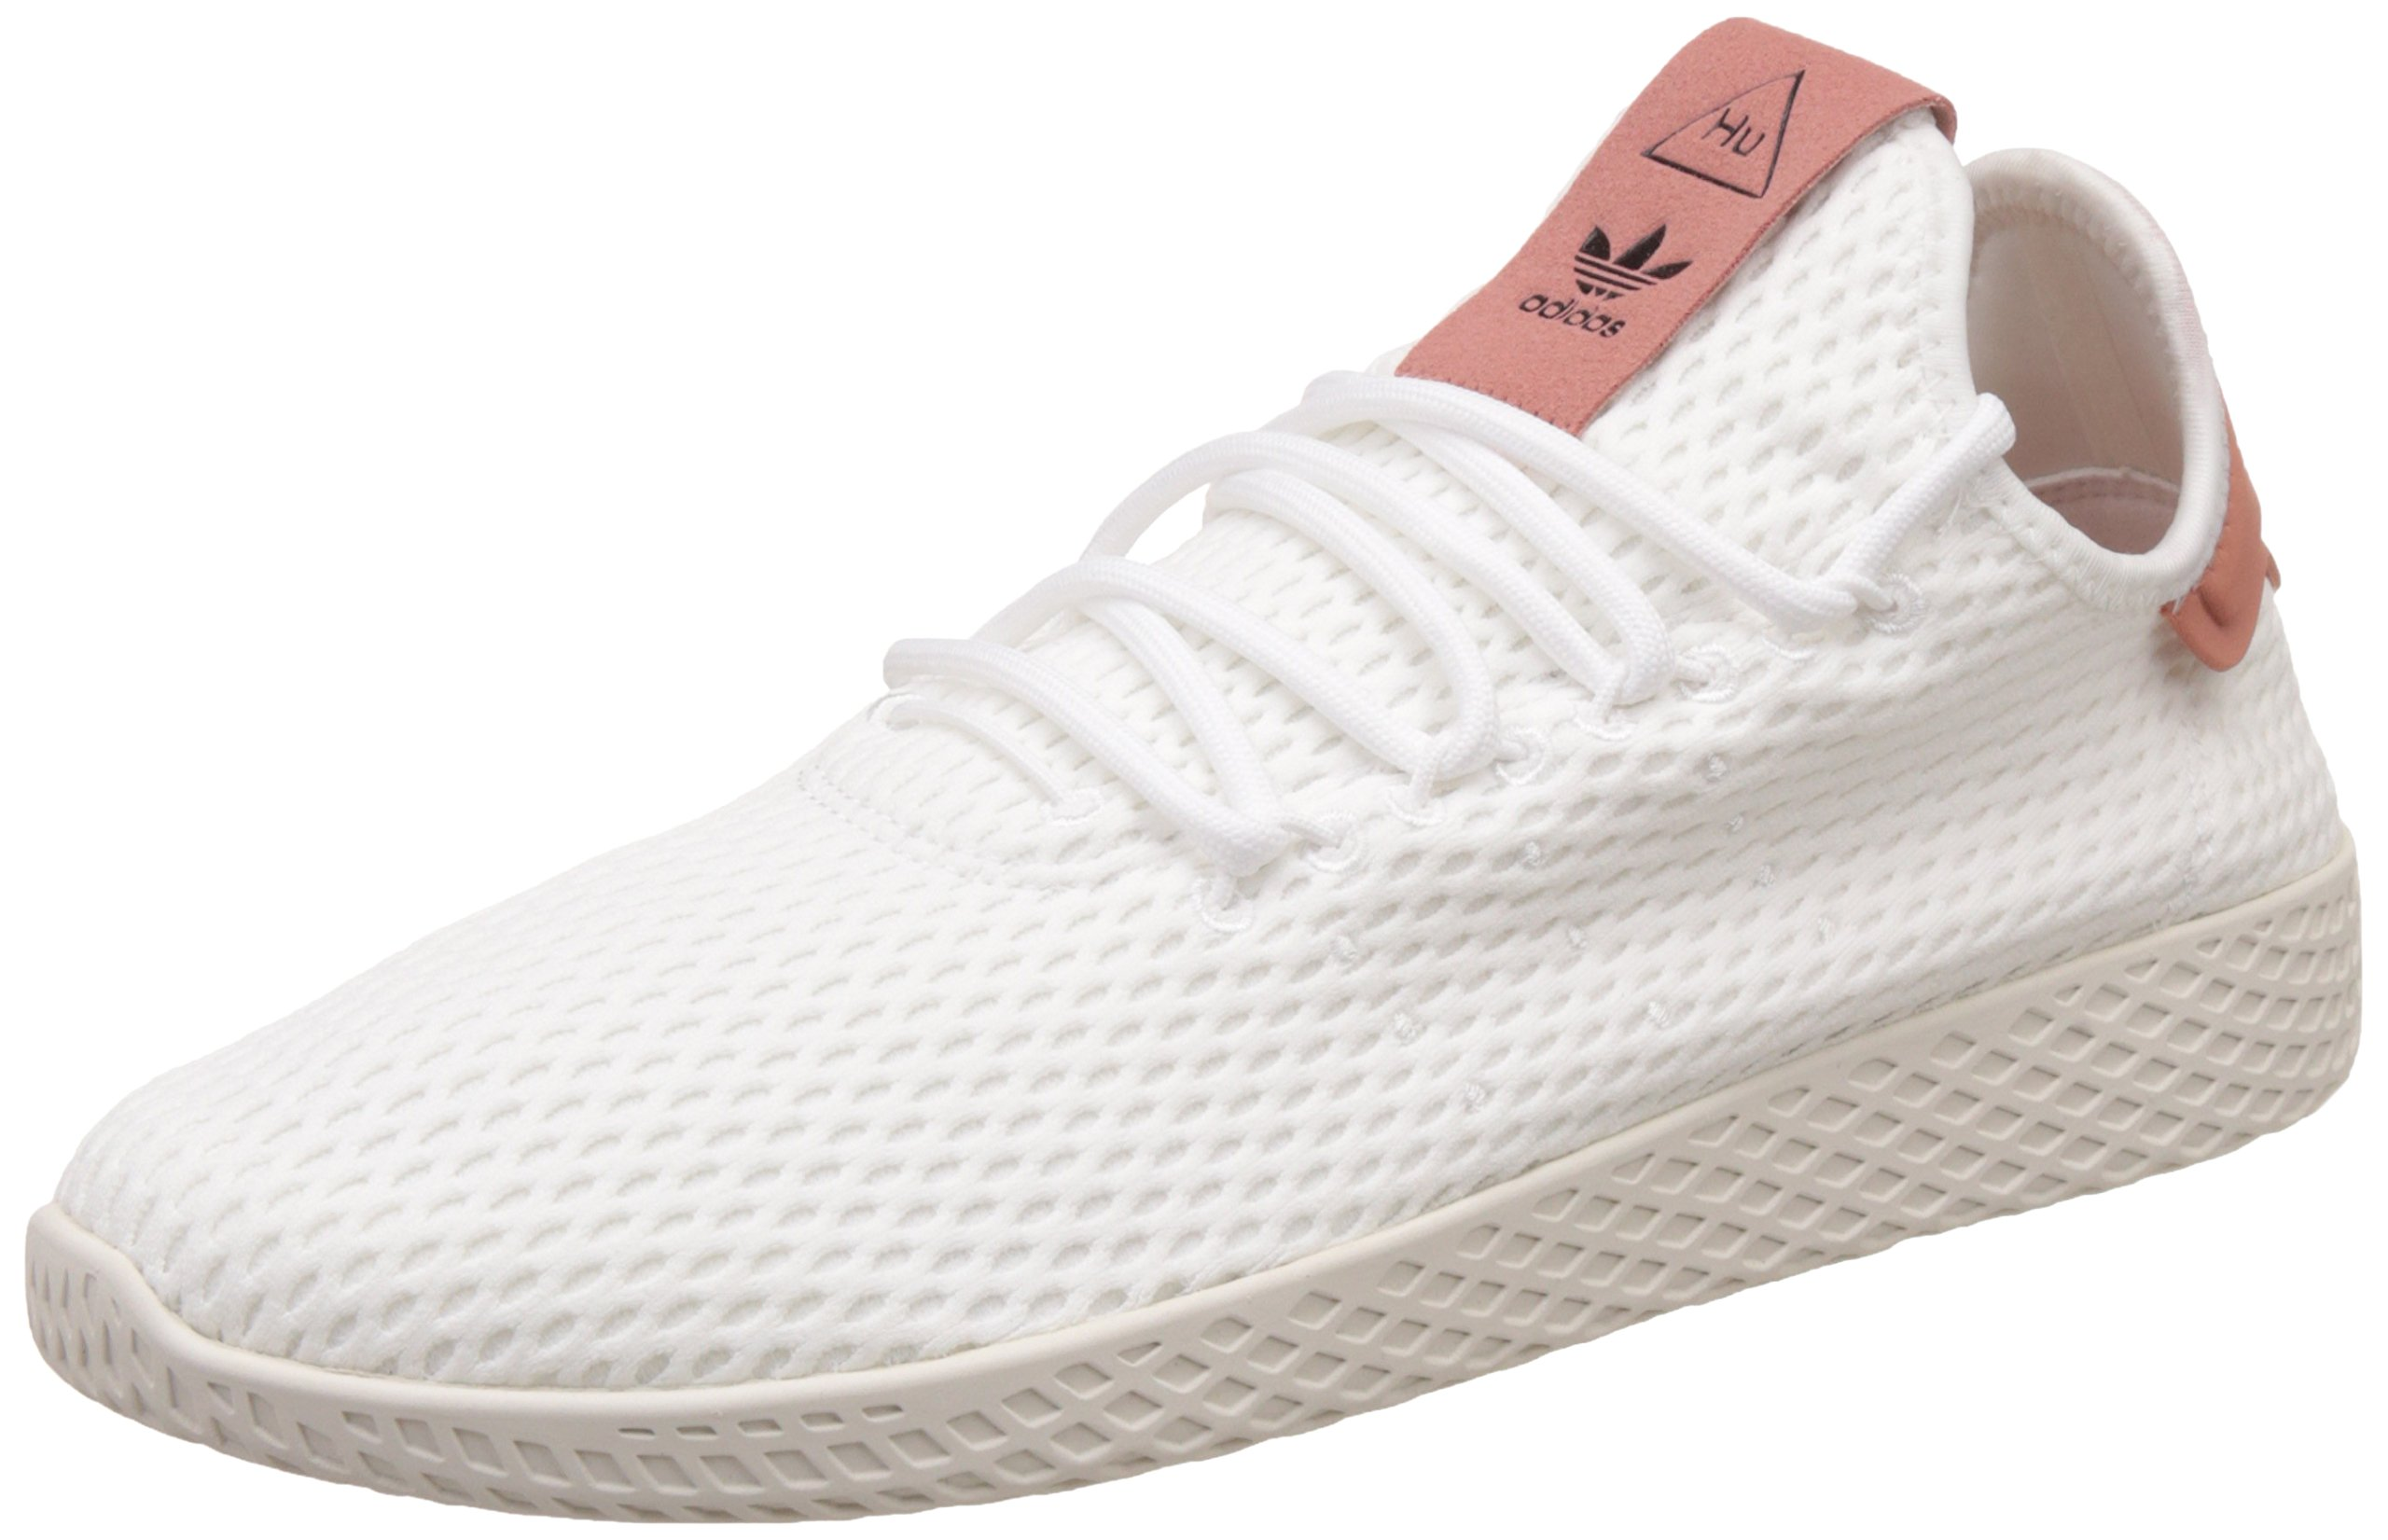 8d8c47aa6 Galleon - Adidas Pharrell Williams Tennis Hu Girls Sneakers White